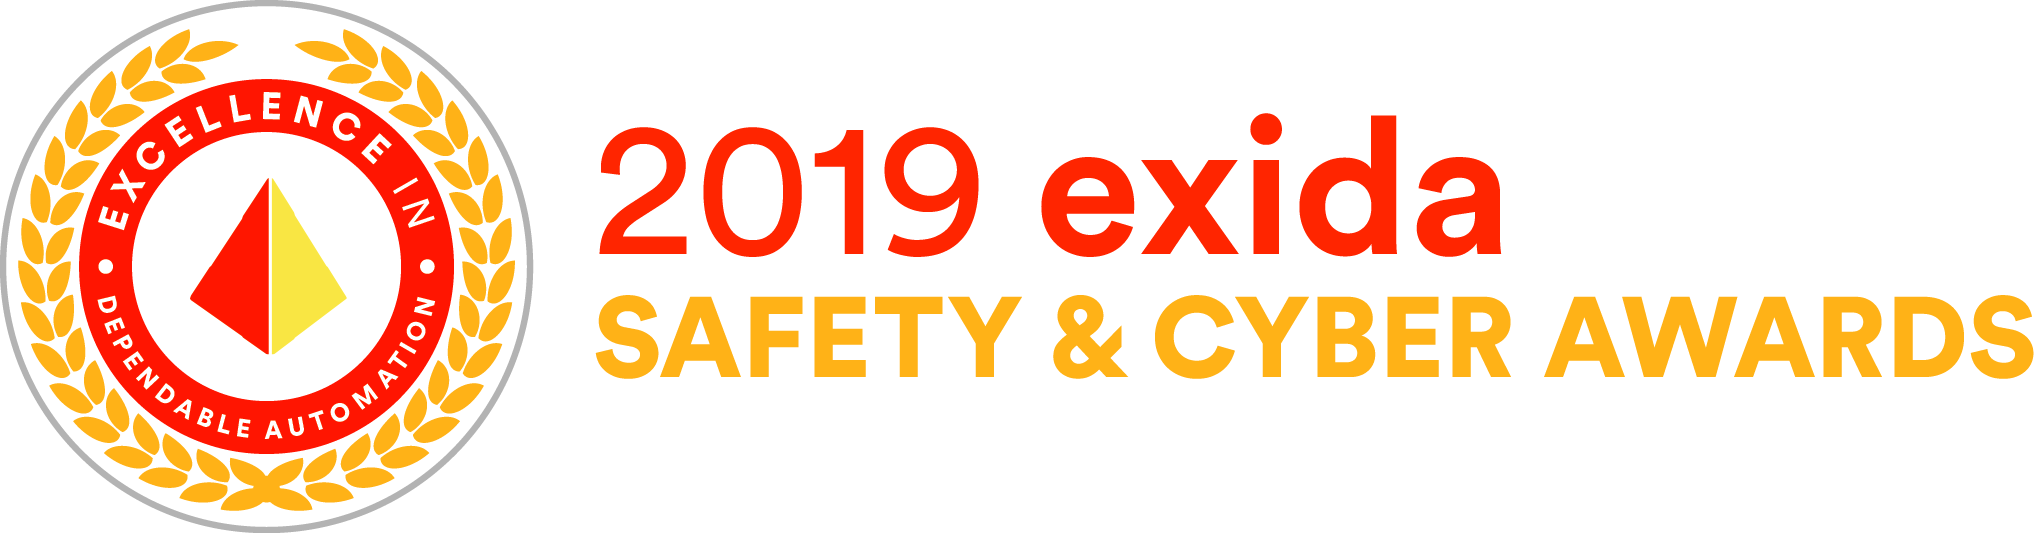 exida Safety & Cyber Aards